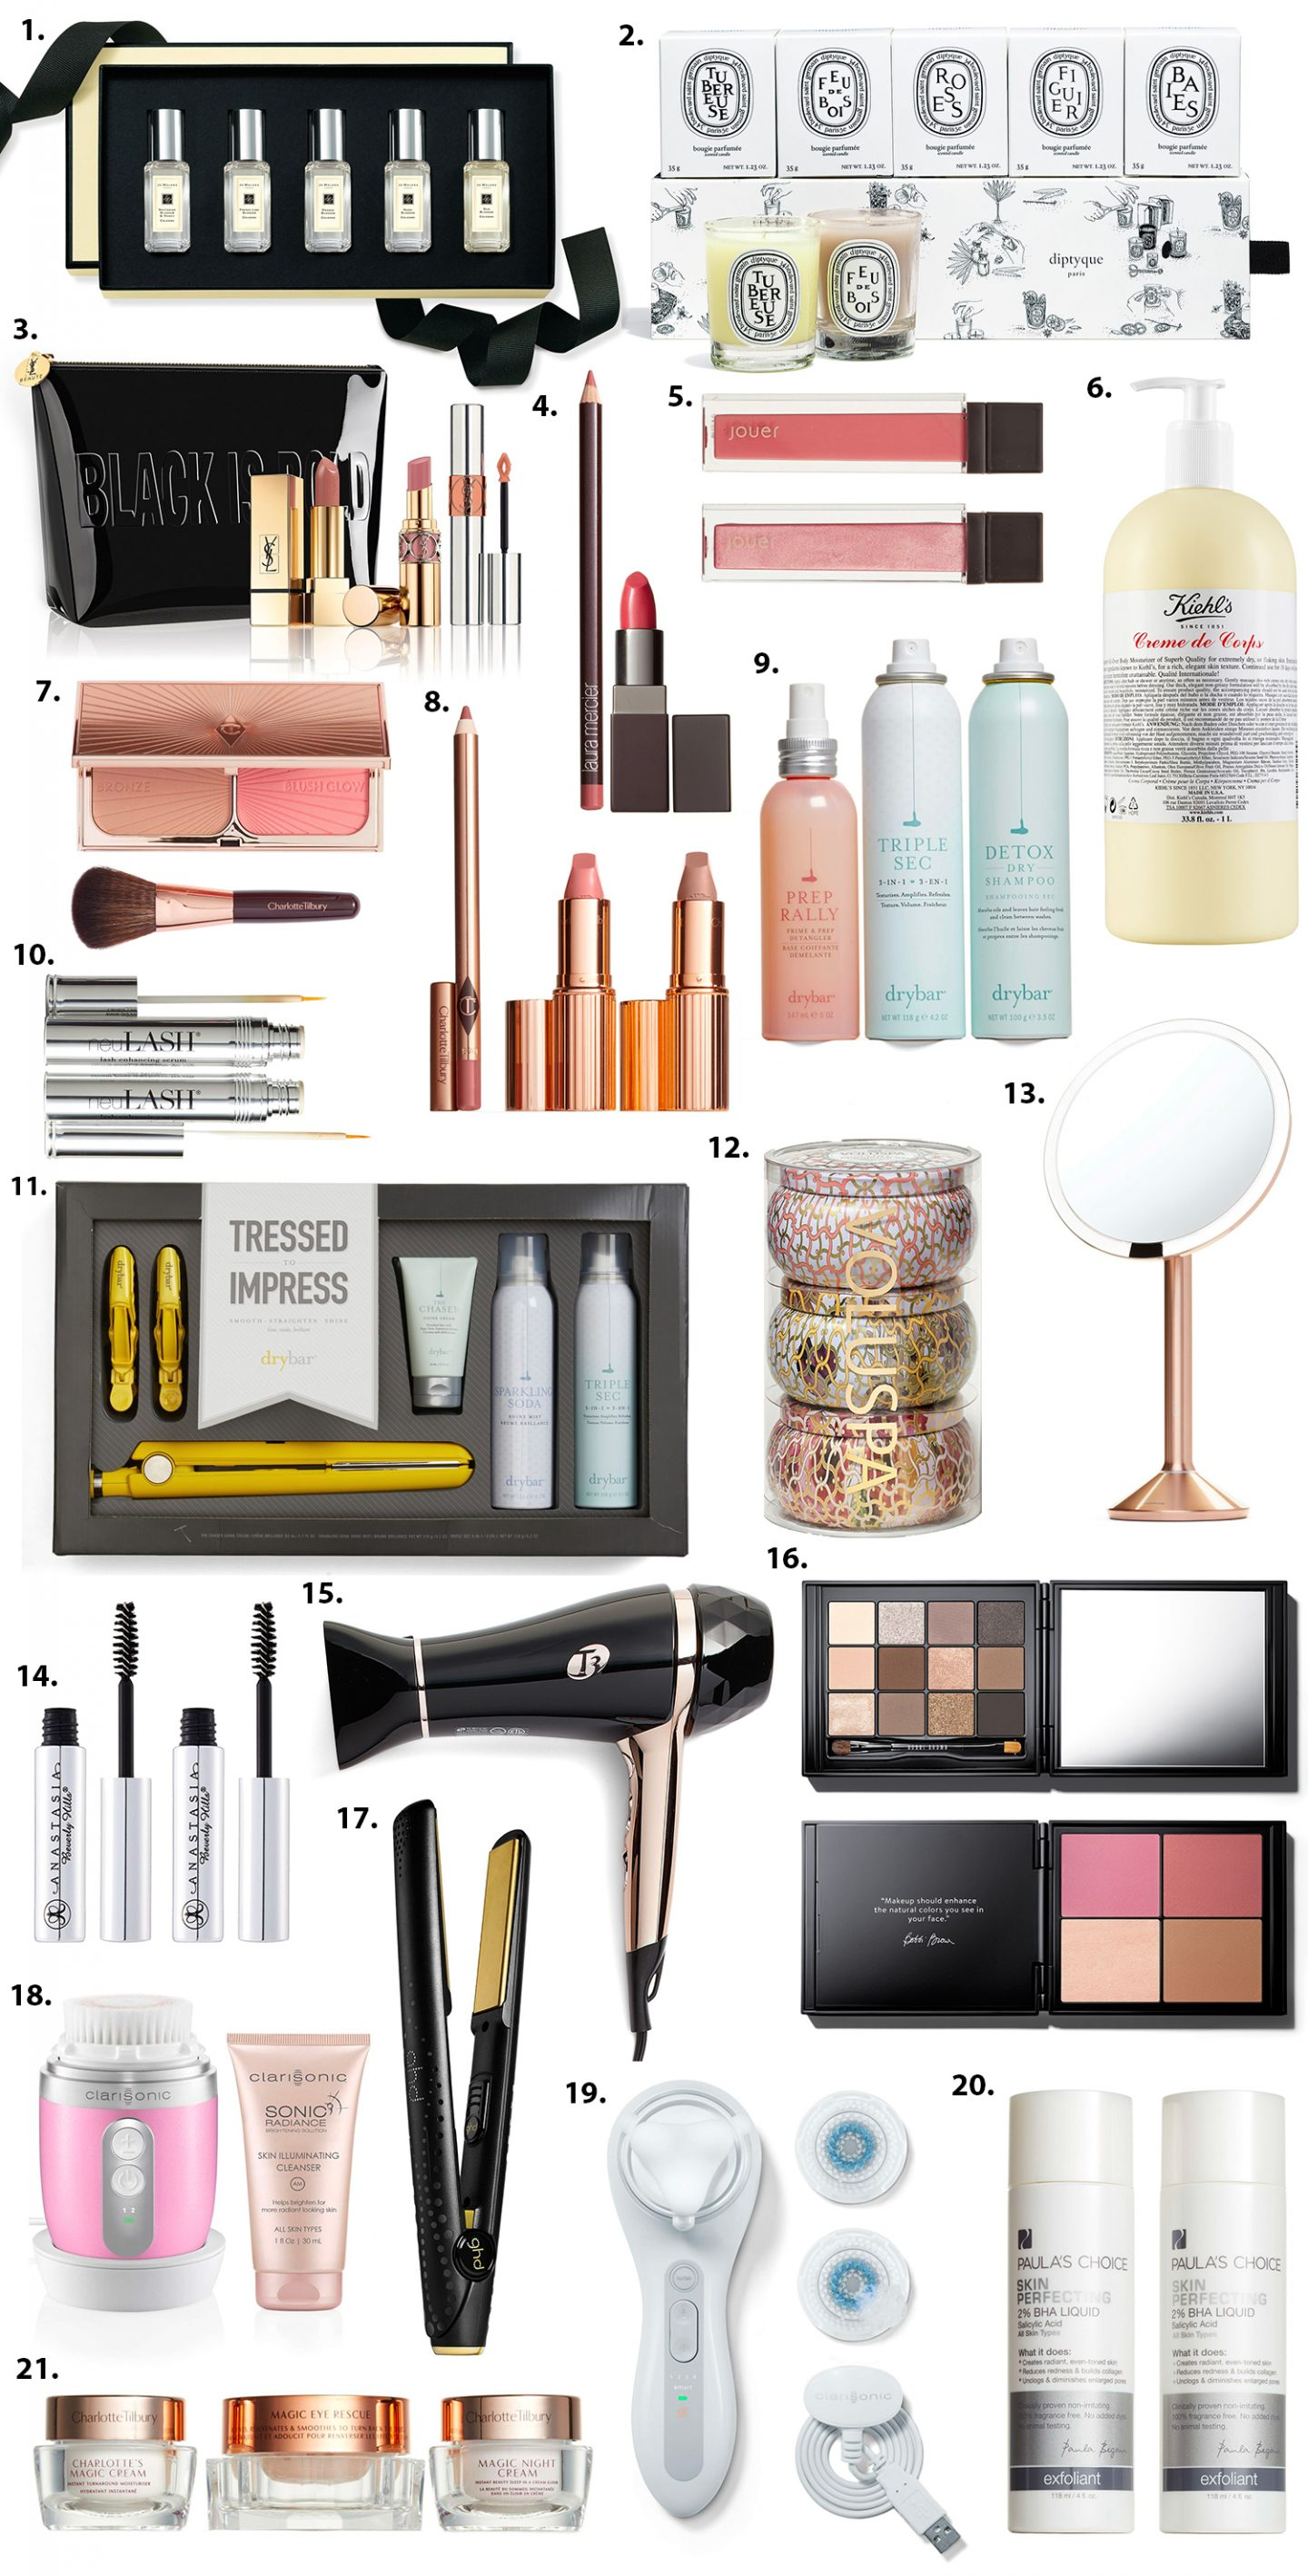 The best beauty deals from the Nordstrom Anniversary Sale 2017